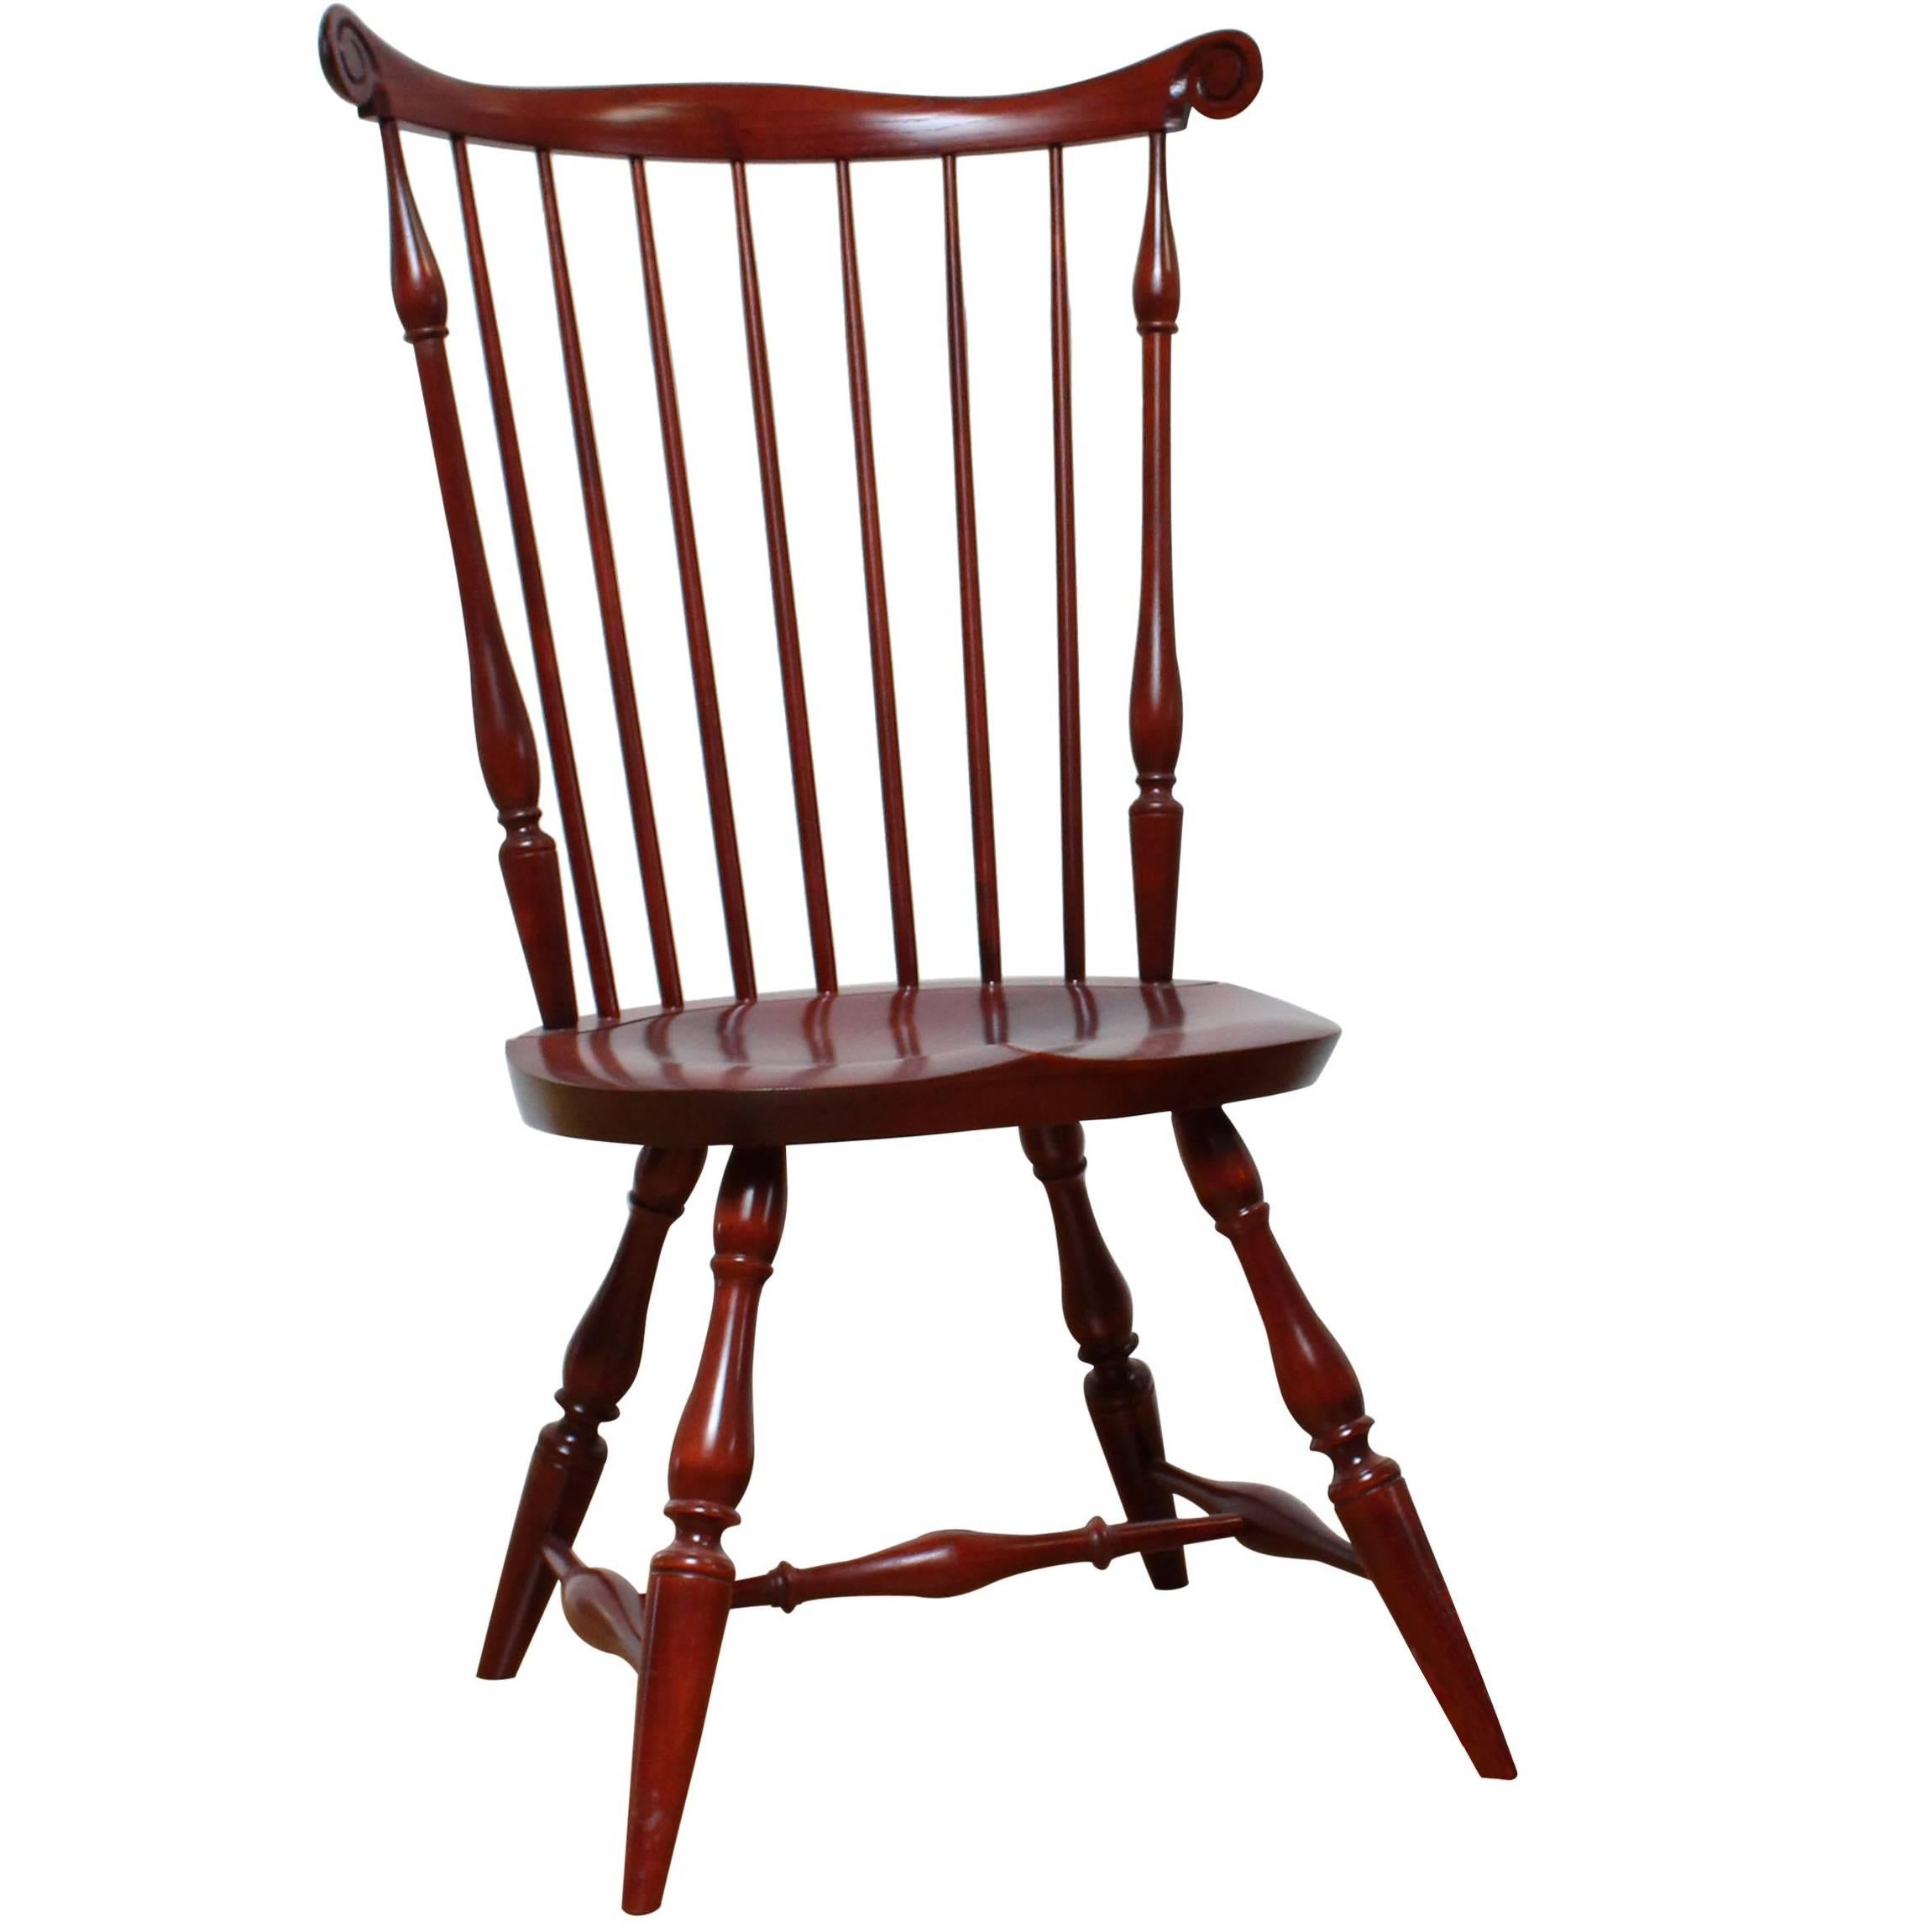 Nantucket Style Windsor Side Chair by Warren Chair Works For Sale  sc 1 st  1stDibs & Nantucket Style Windsor Side Chair by Warren Chair Works For Sale at ...